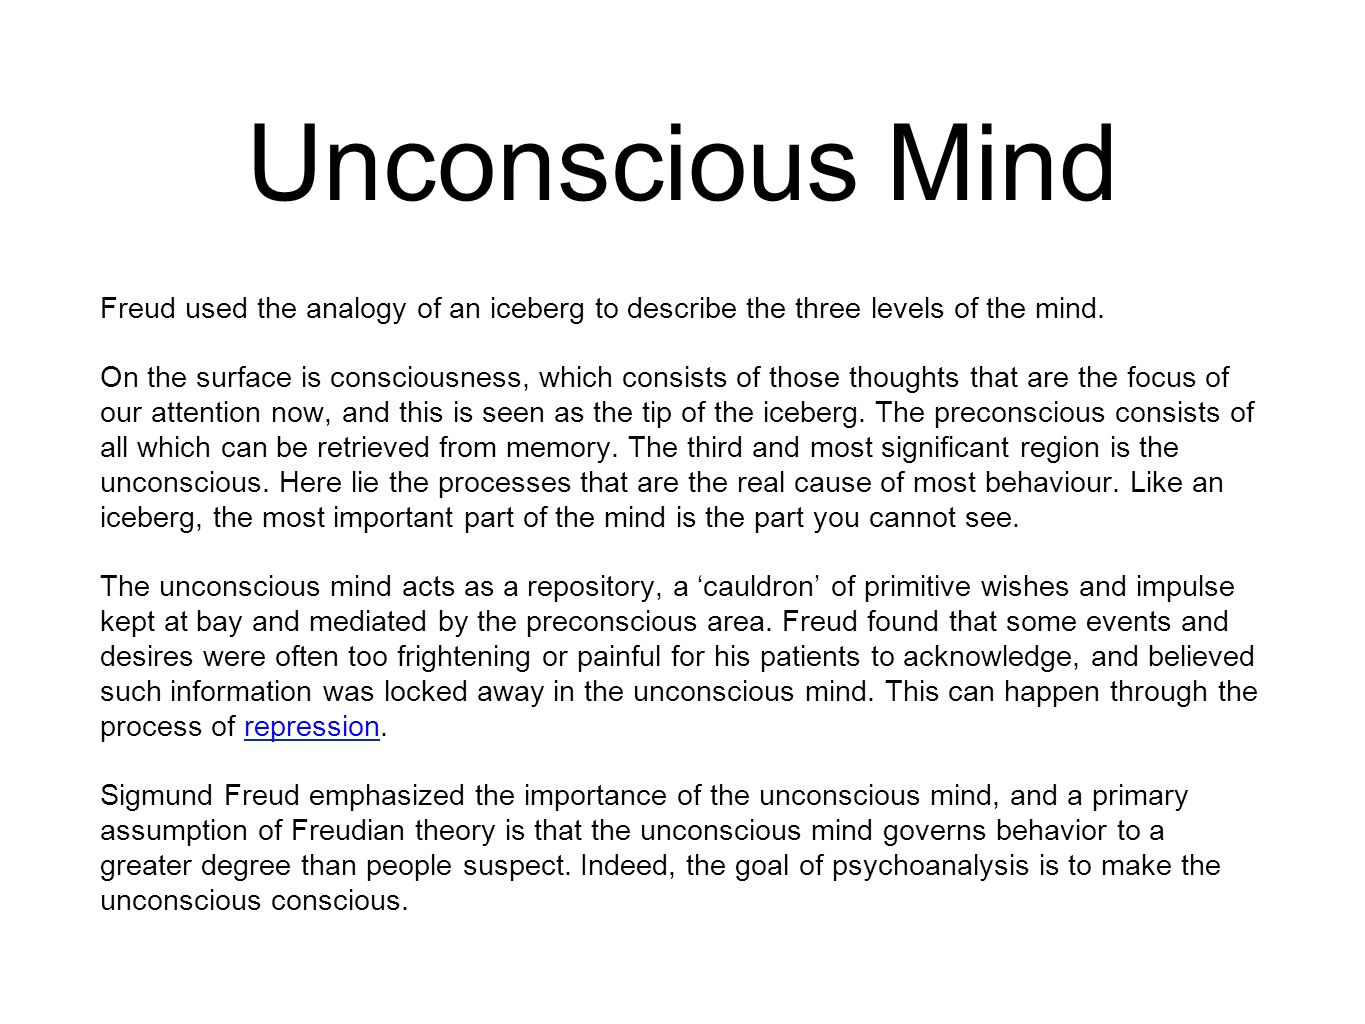 comparing the unconscious and consciousness As the nobel laureate neuroscientist eric kandel writes, 'one of the most surprising insights to emerge from the modern study of states of consciousness is that freud was right: unconscious mental processes pervade conscious thought moreover, not all unconscious mental processes are the same' (kandel 2013, 546.